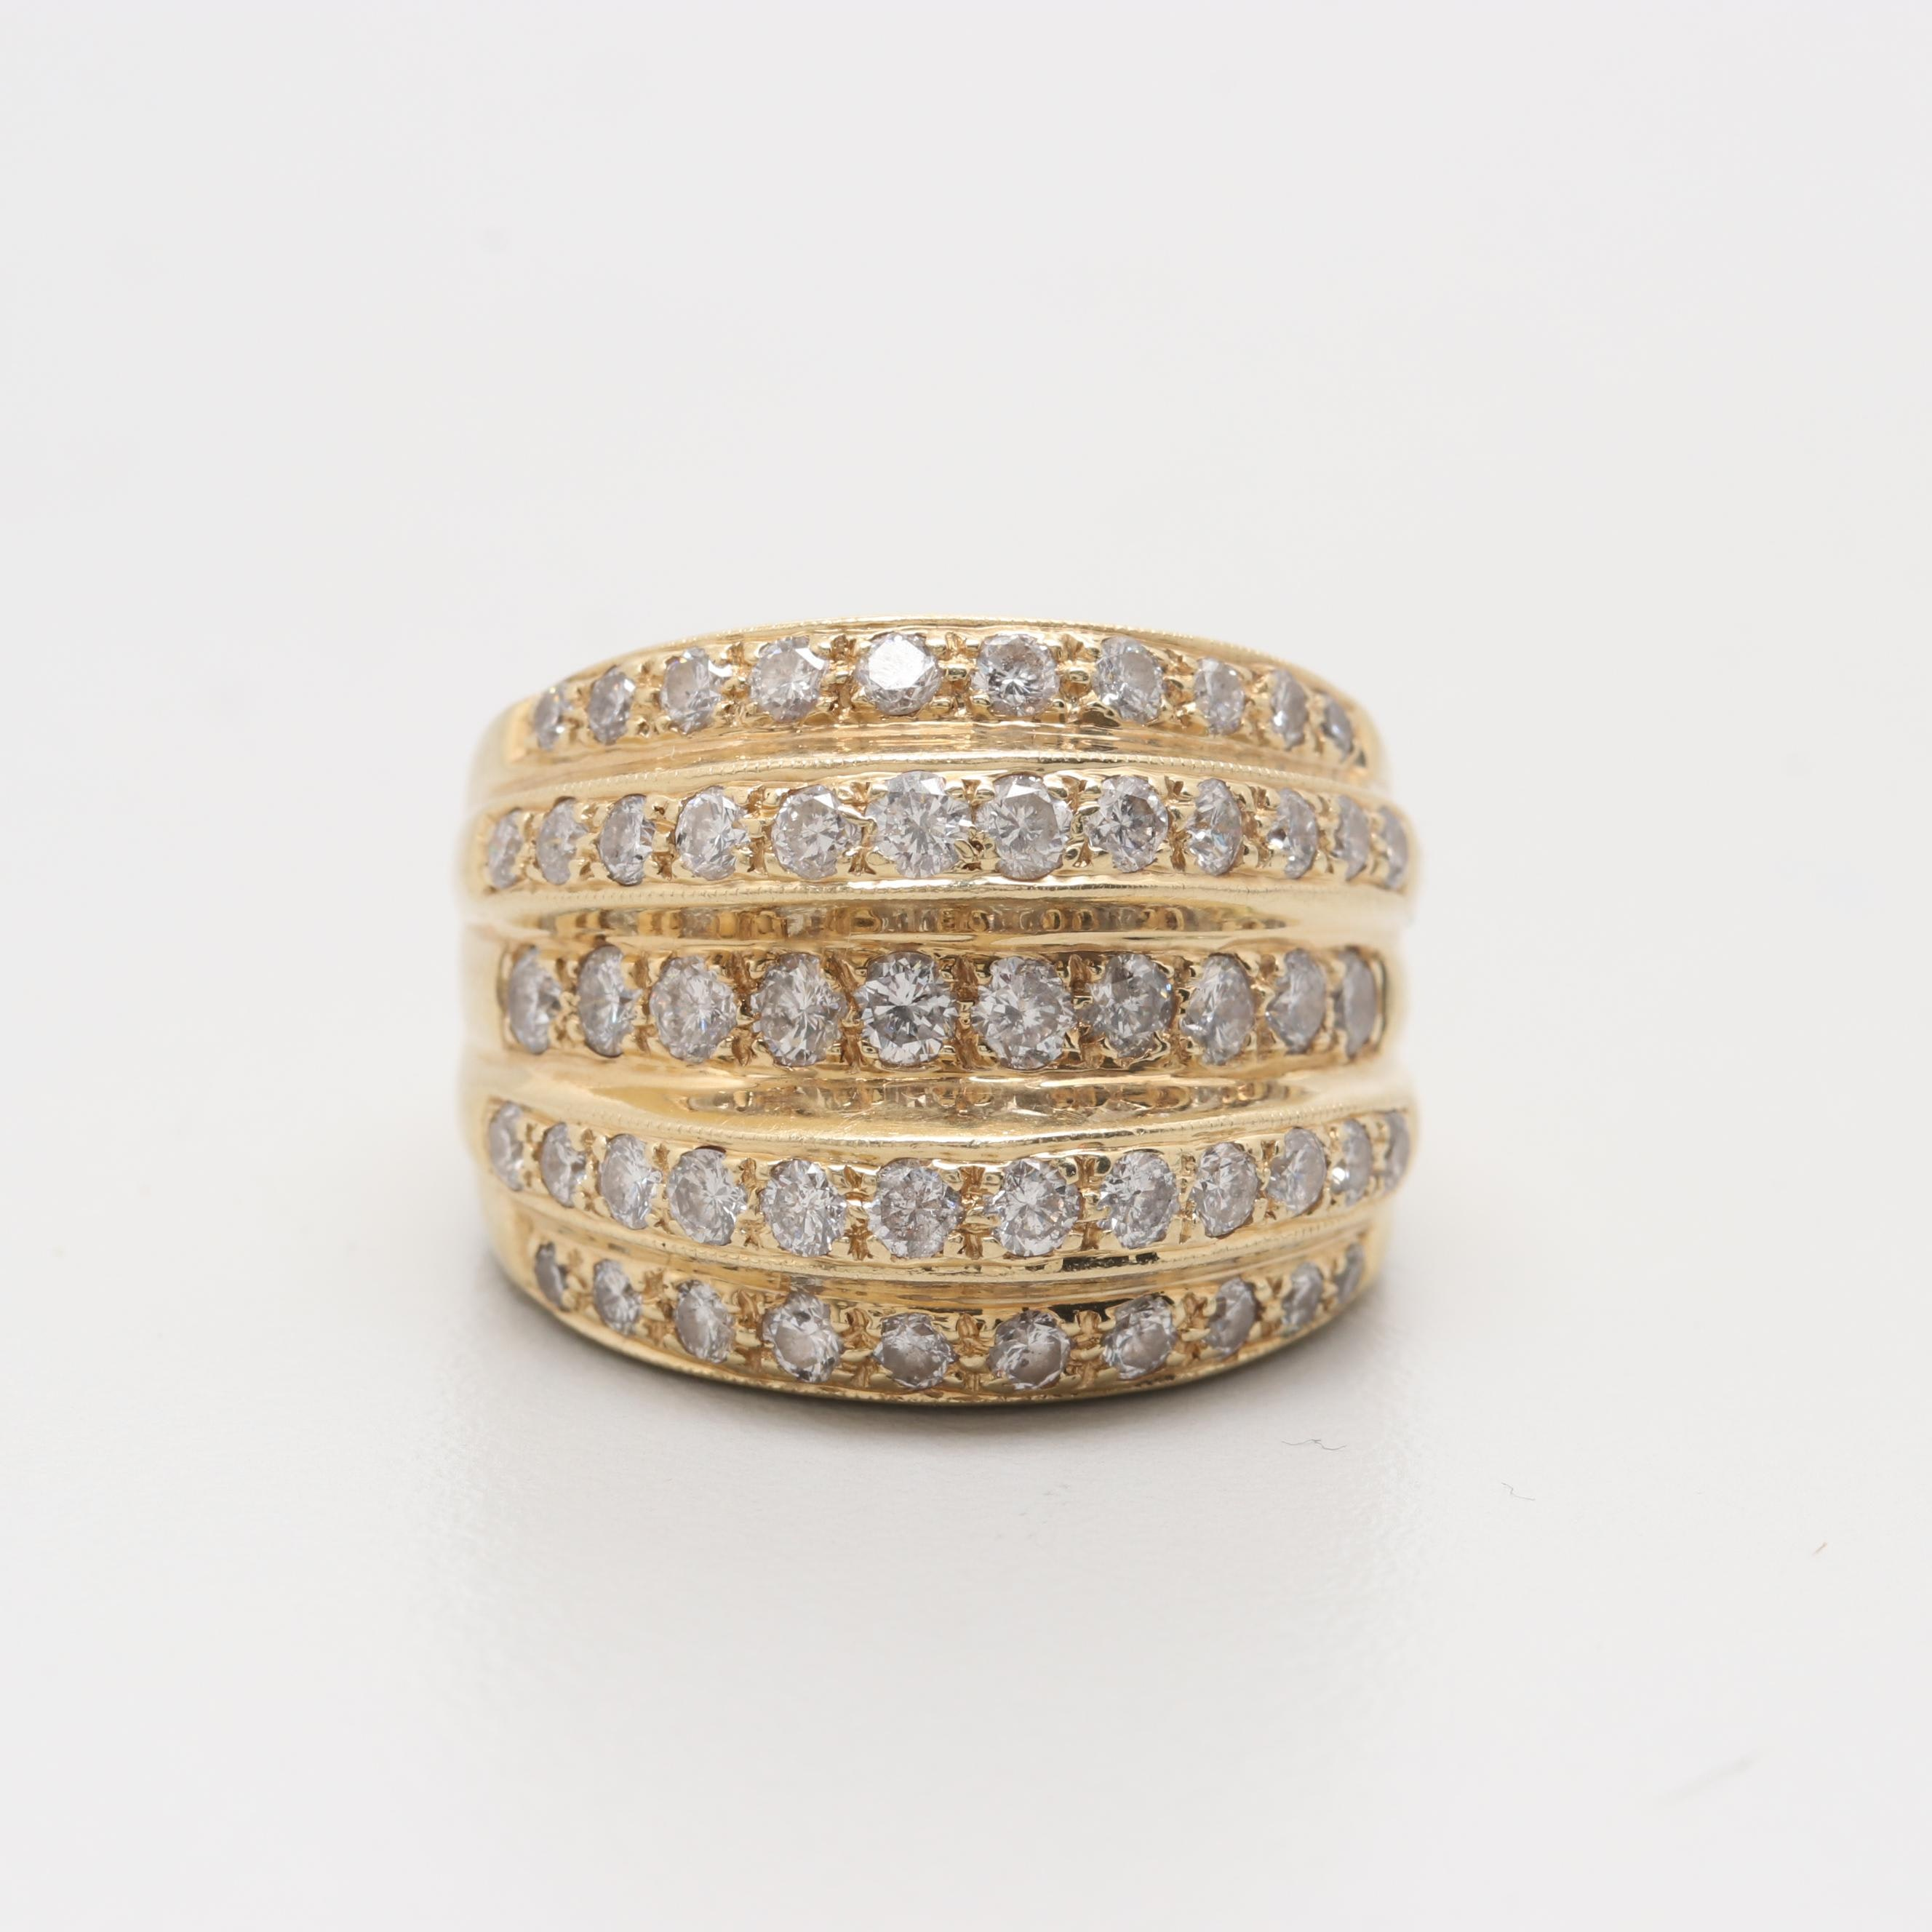 14K Yellow Gold 1.98 CTW Diamond Ring